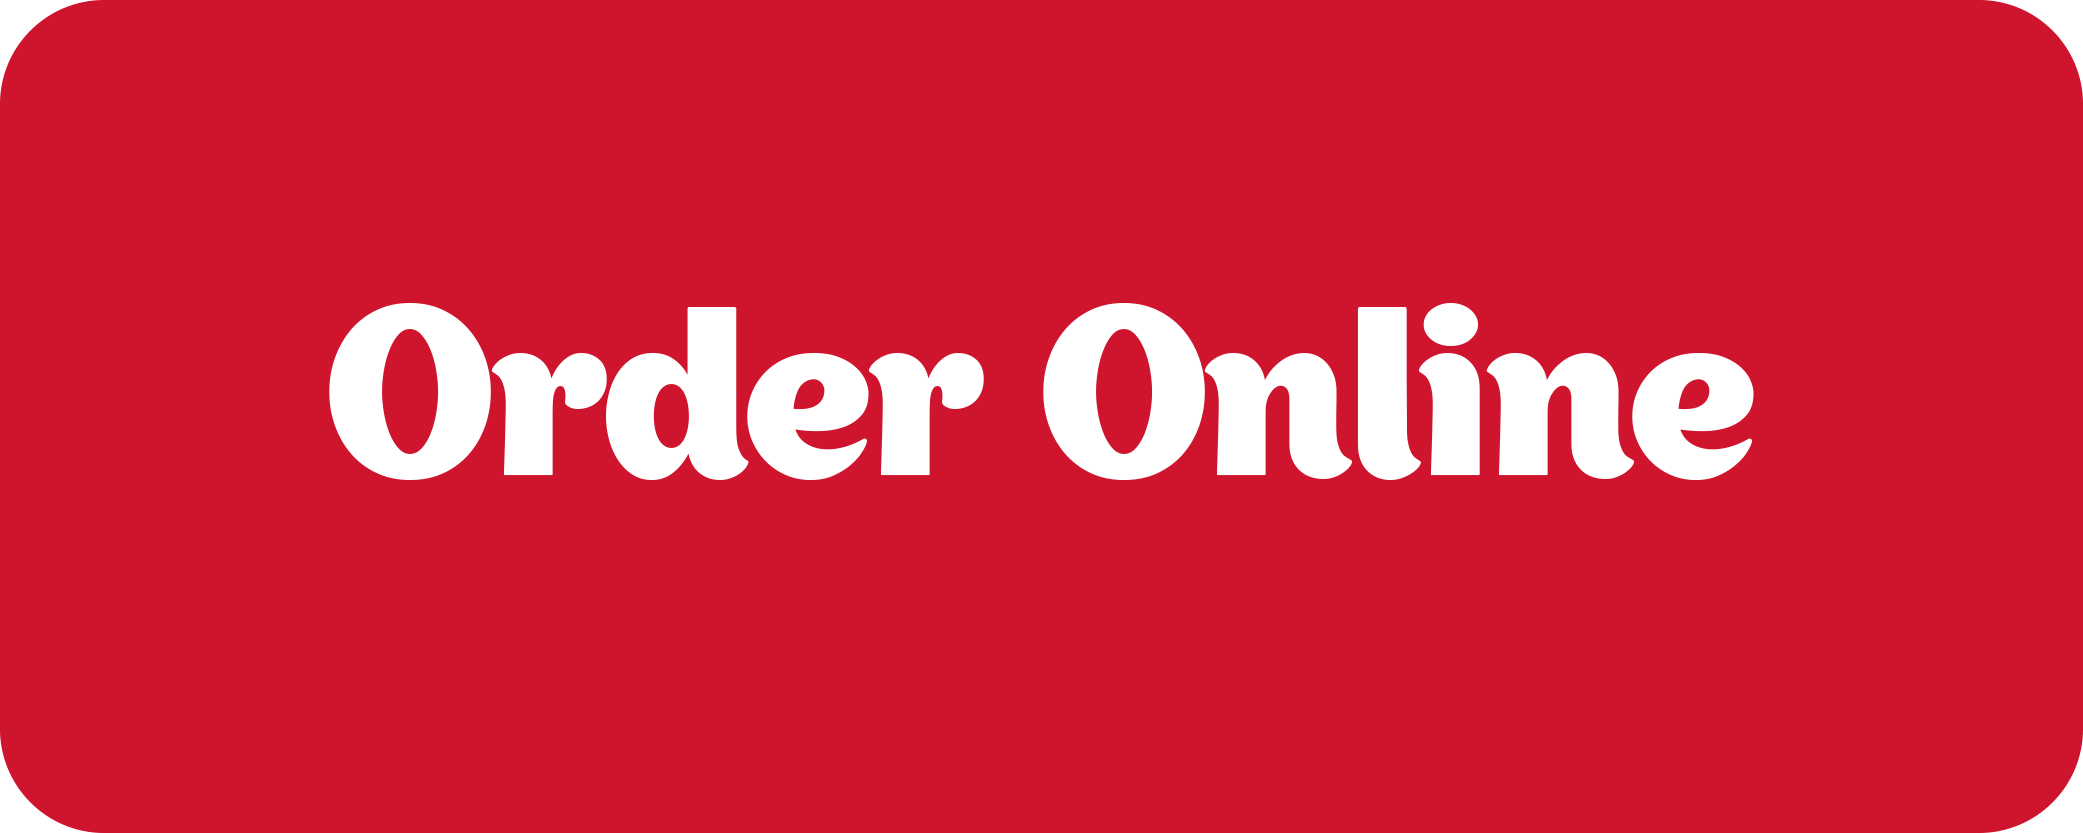 Order Online Button.png